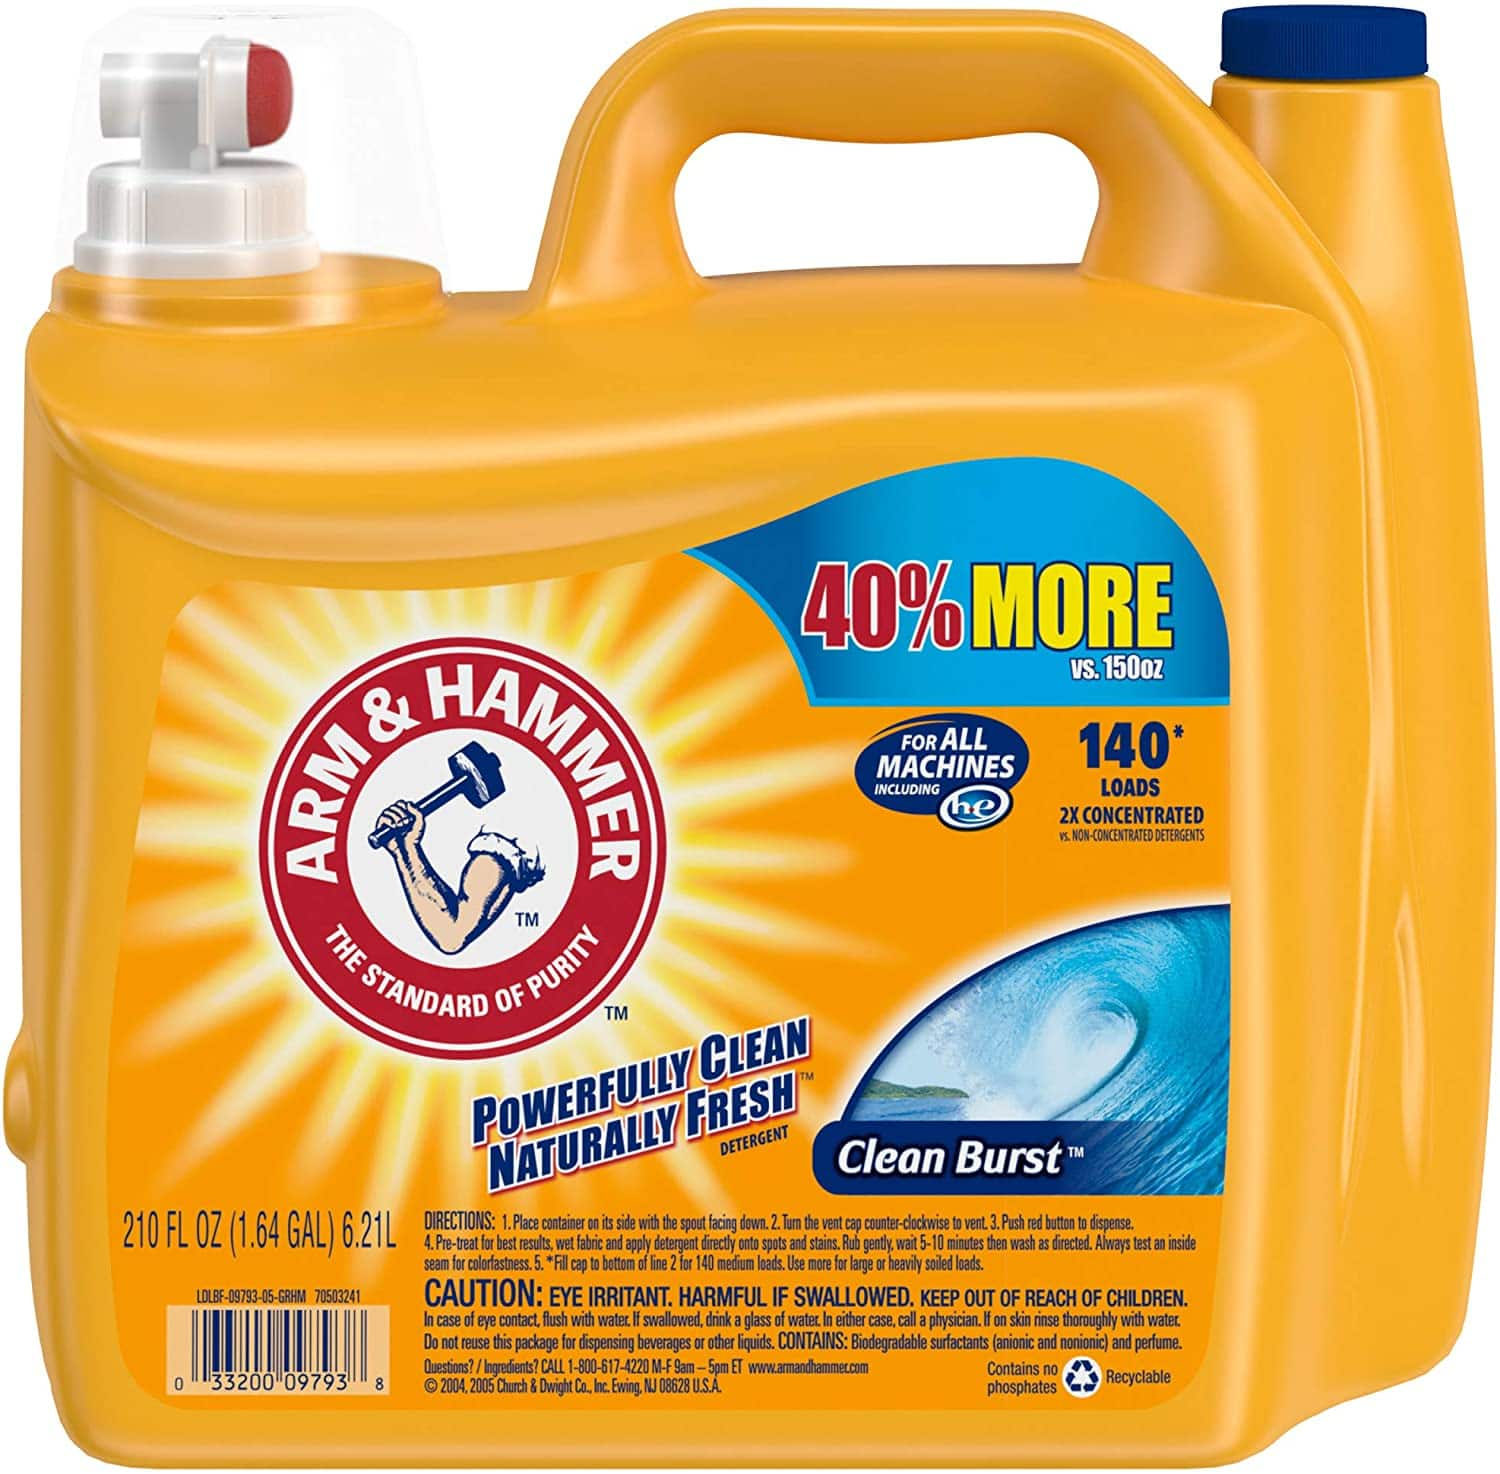 210-Oz Arm & Hammer Liquid Laundry Detergent (Clean Burst) $8.75 - Amazon